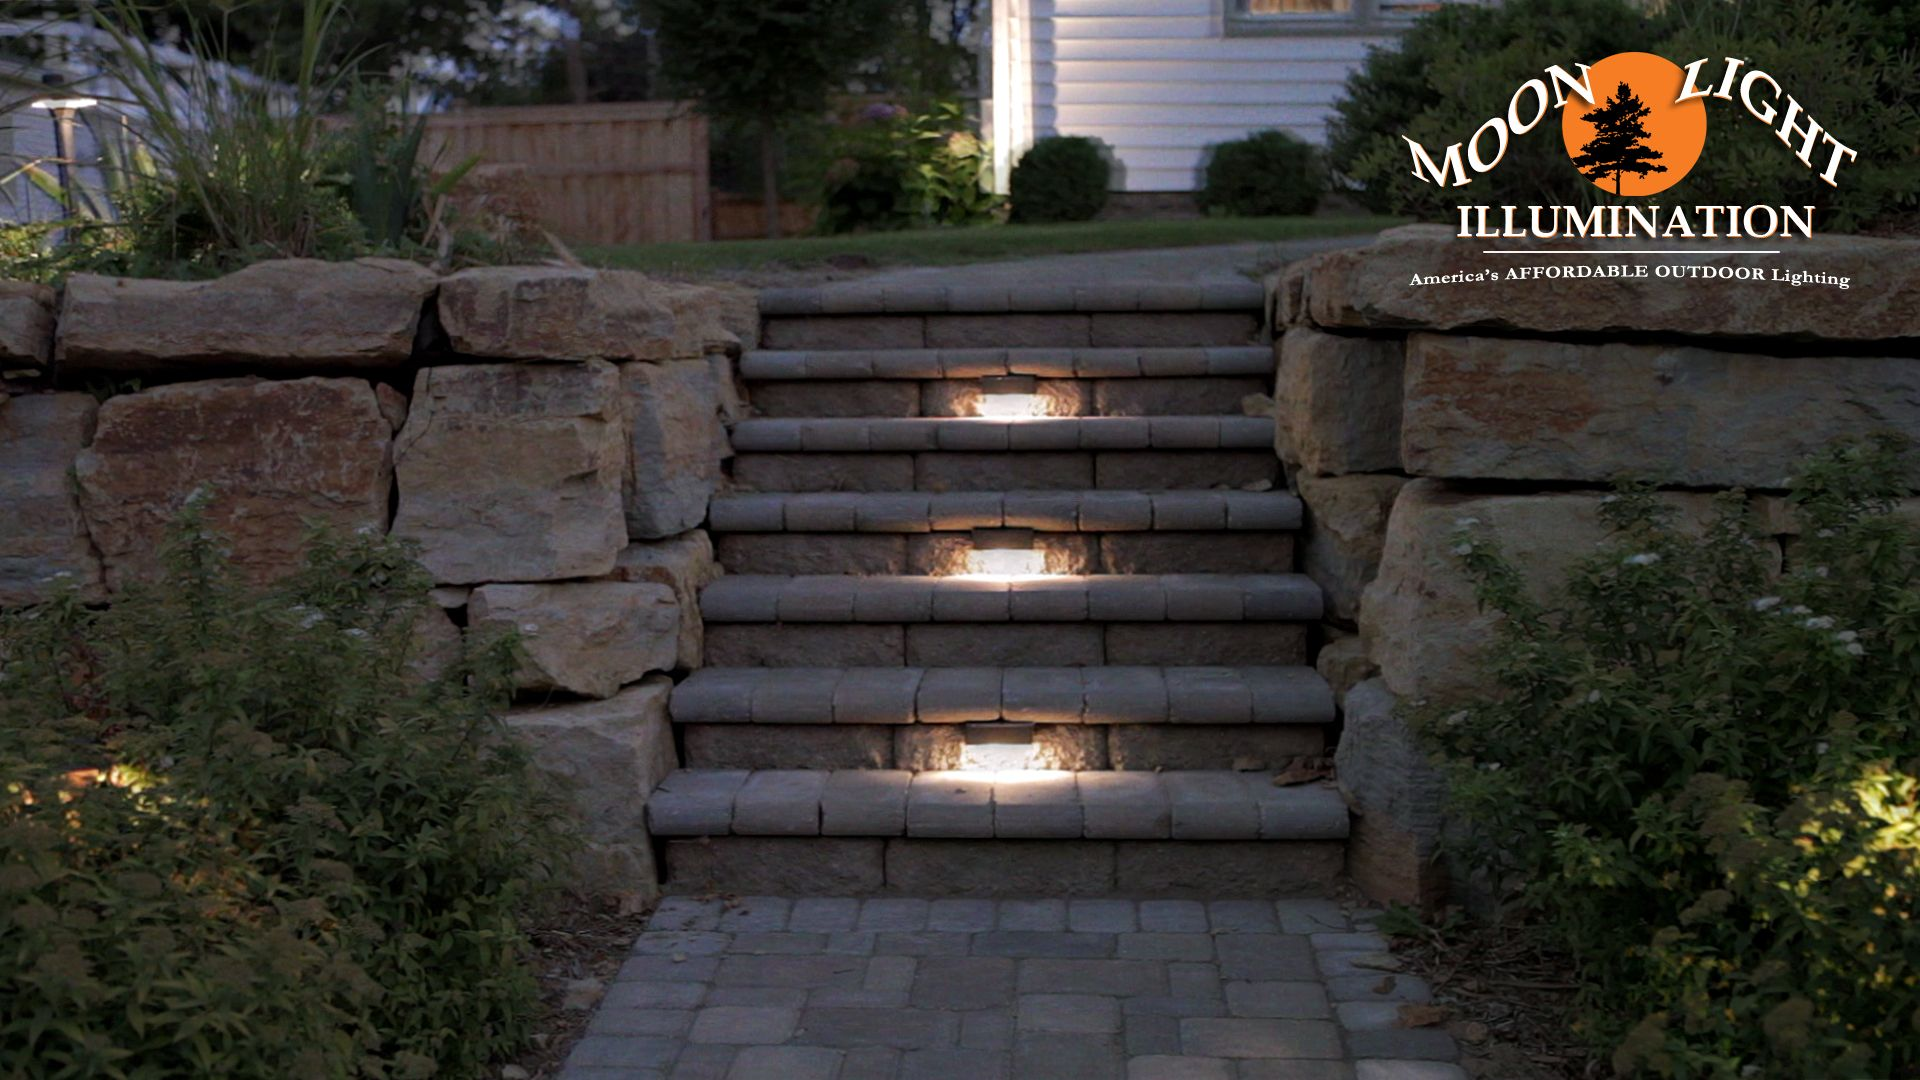 Outdoor Low Voltage Lighting Under Cap Lights On Stairs And Steps Path Lights In Landscape Beds Softly Illuminat Home Landscaping Landscape Lighting Outdoor